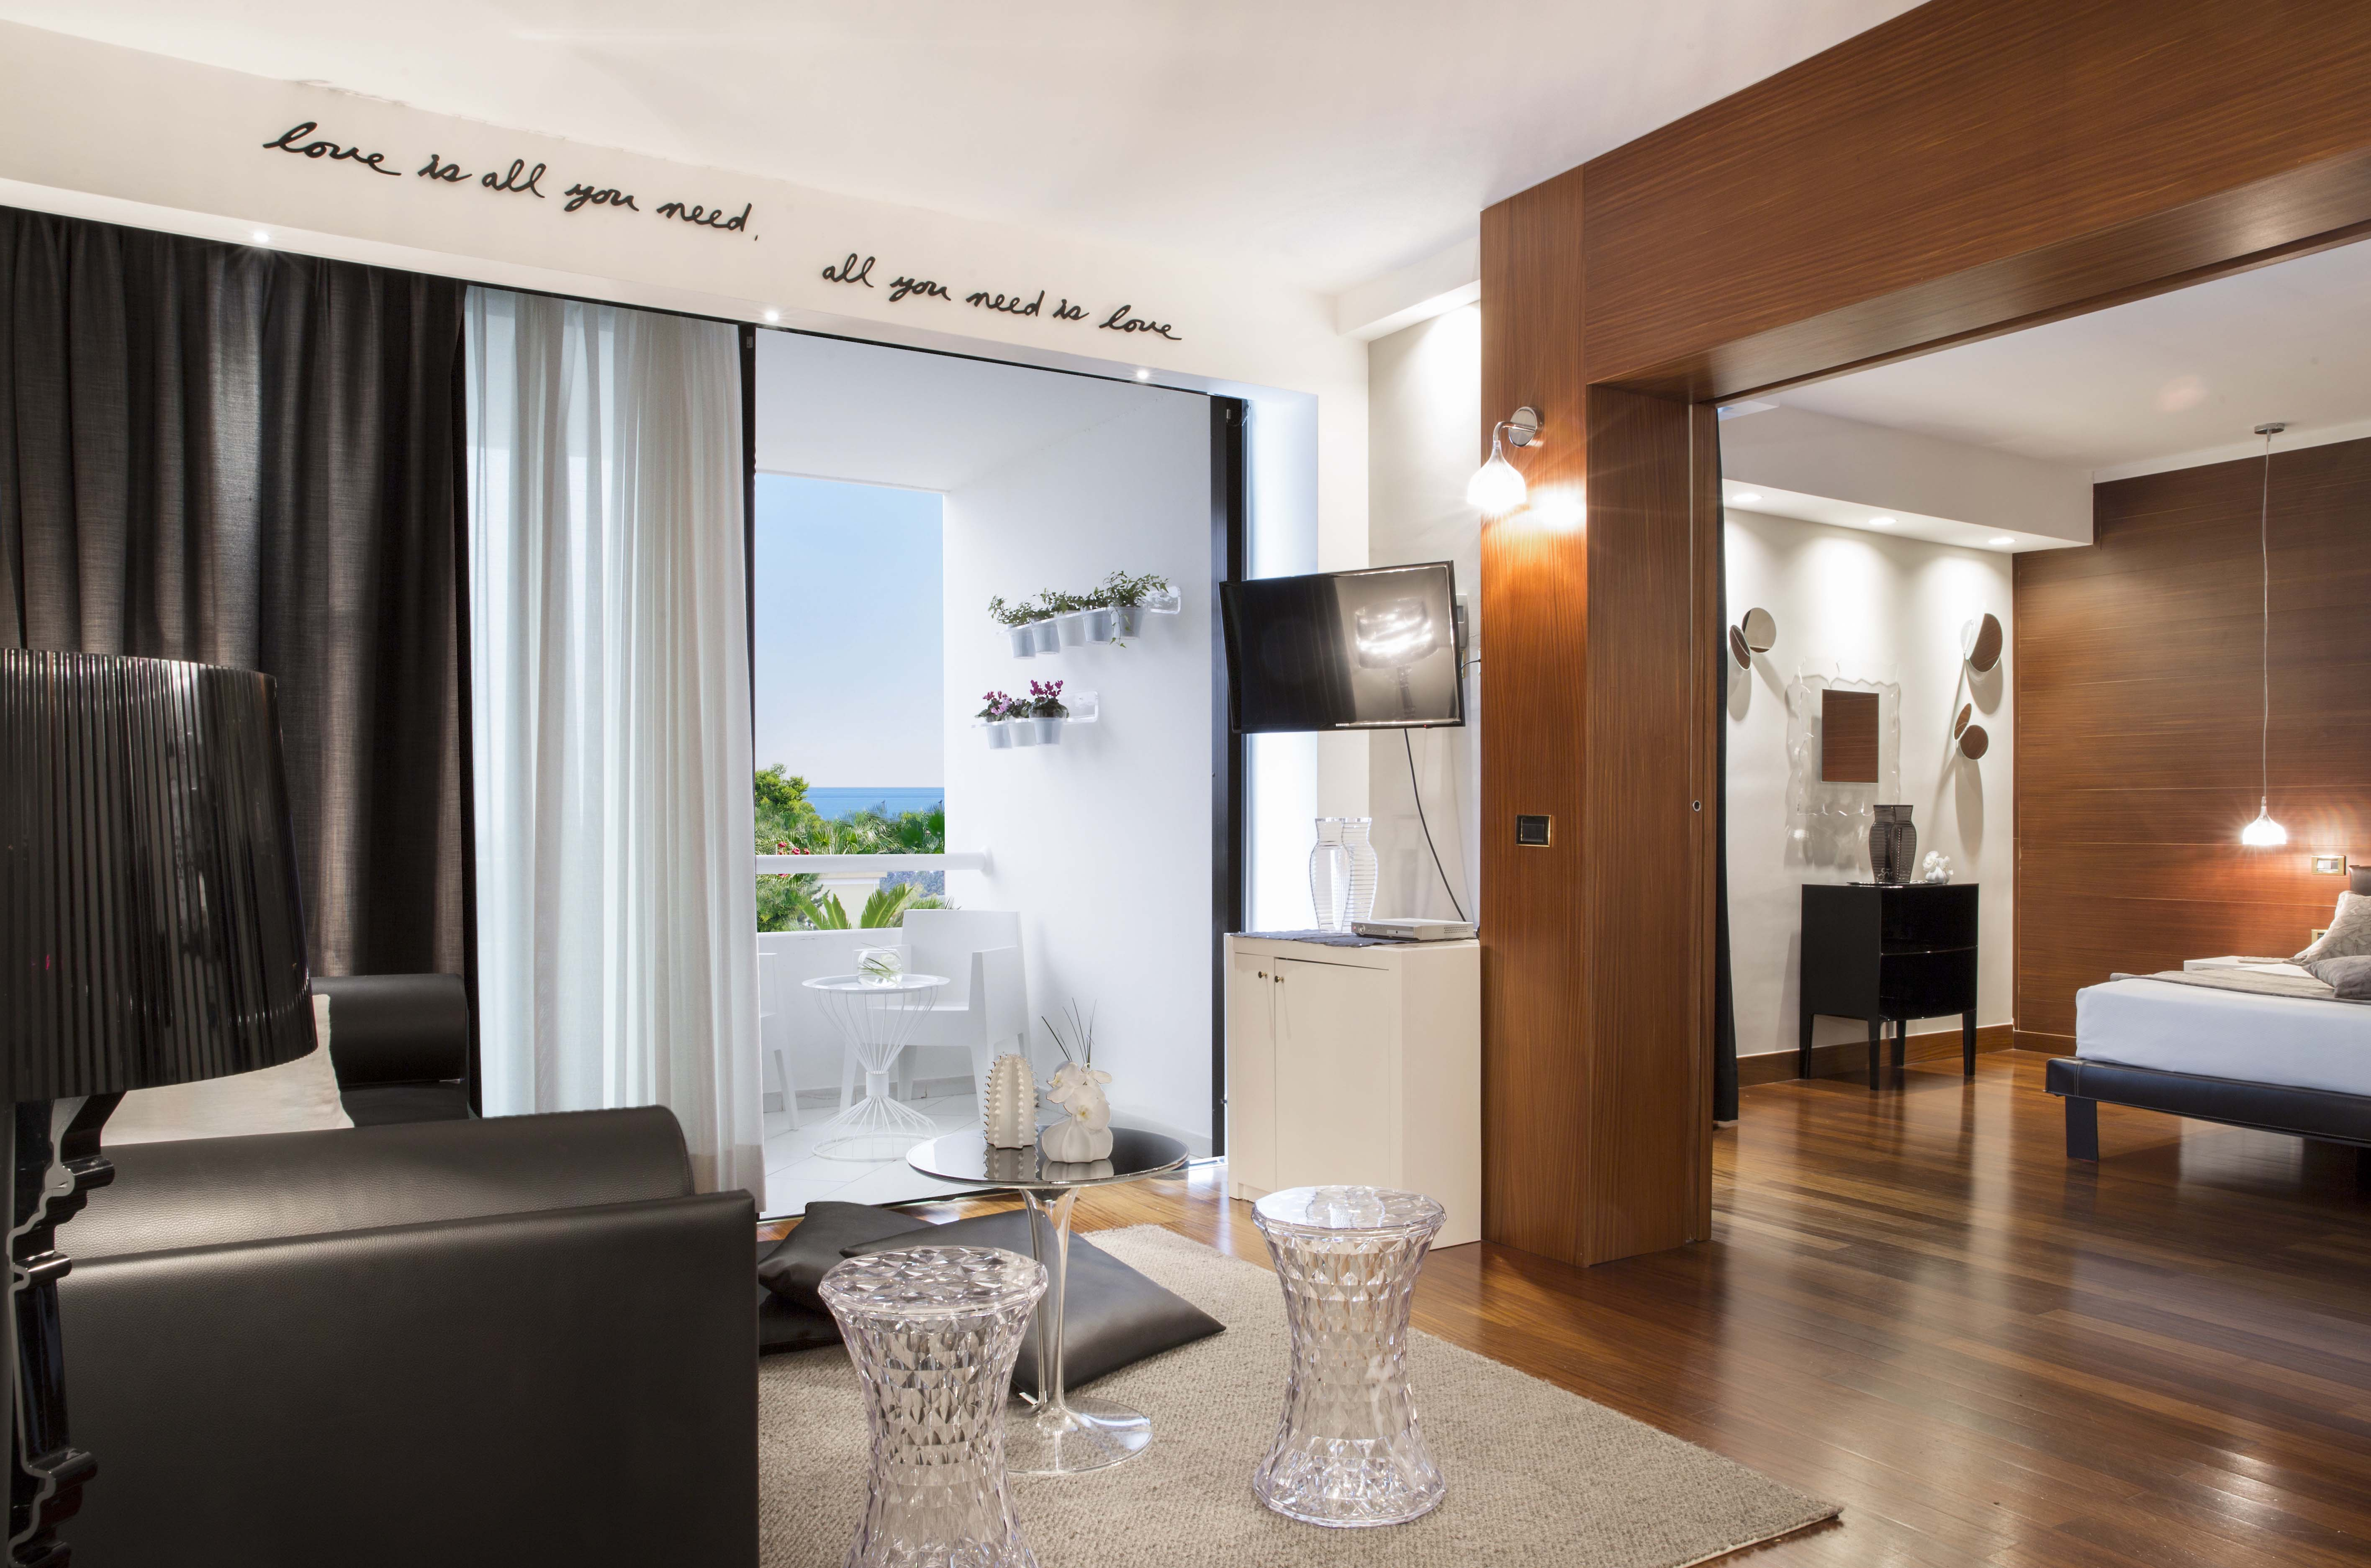 Room management system by VDA